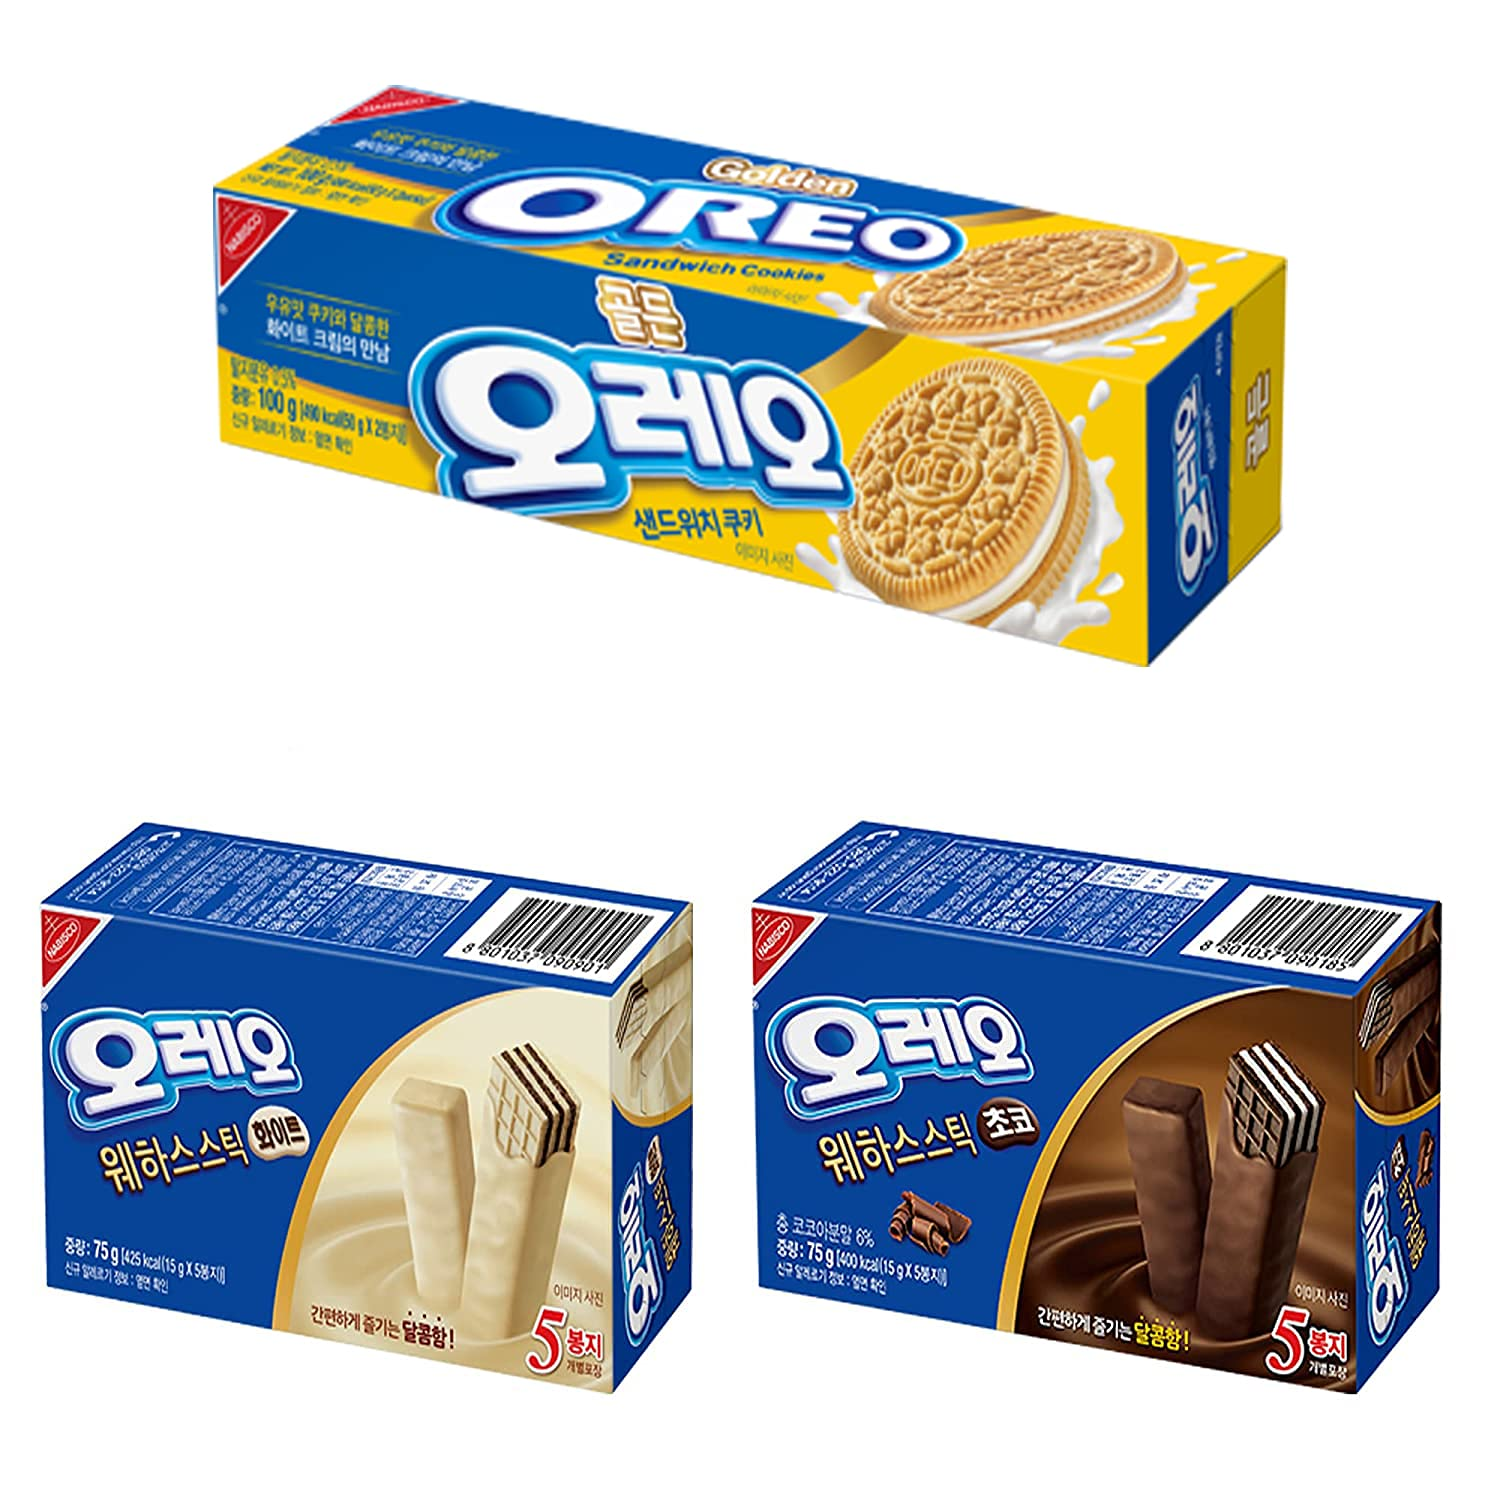 Popular brand Oreo Variety Cookies Award Wafer Stick Limit and Golden Flavor